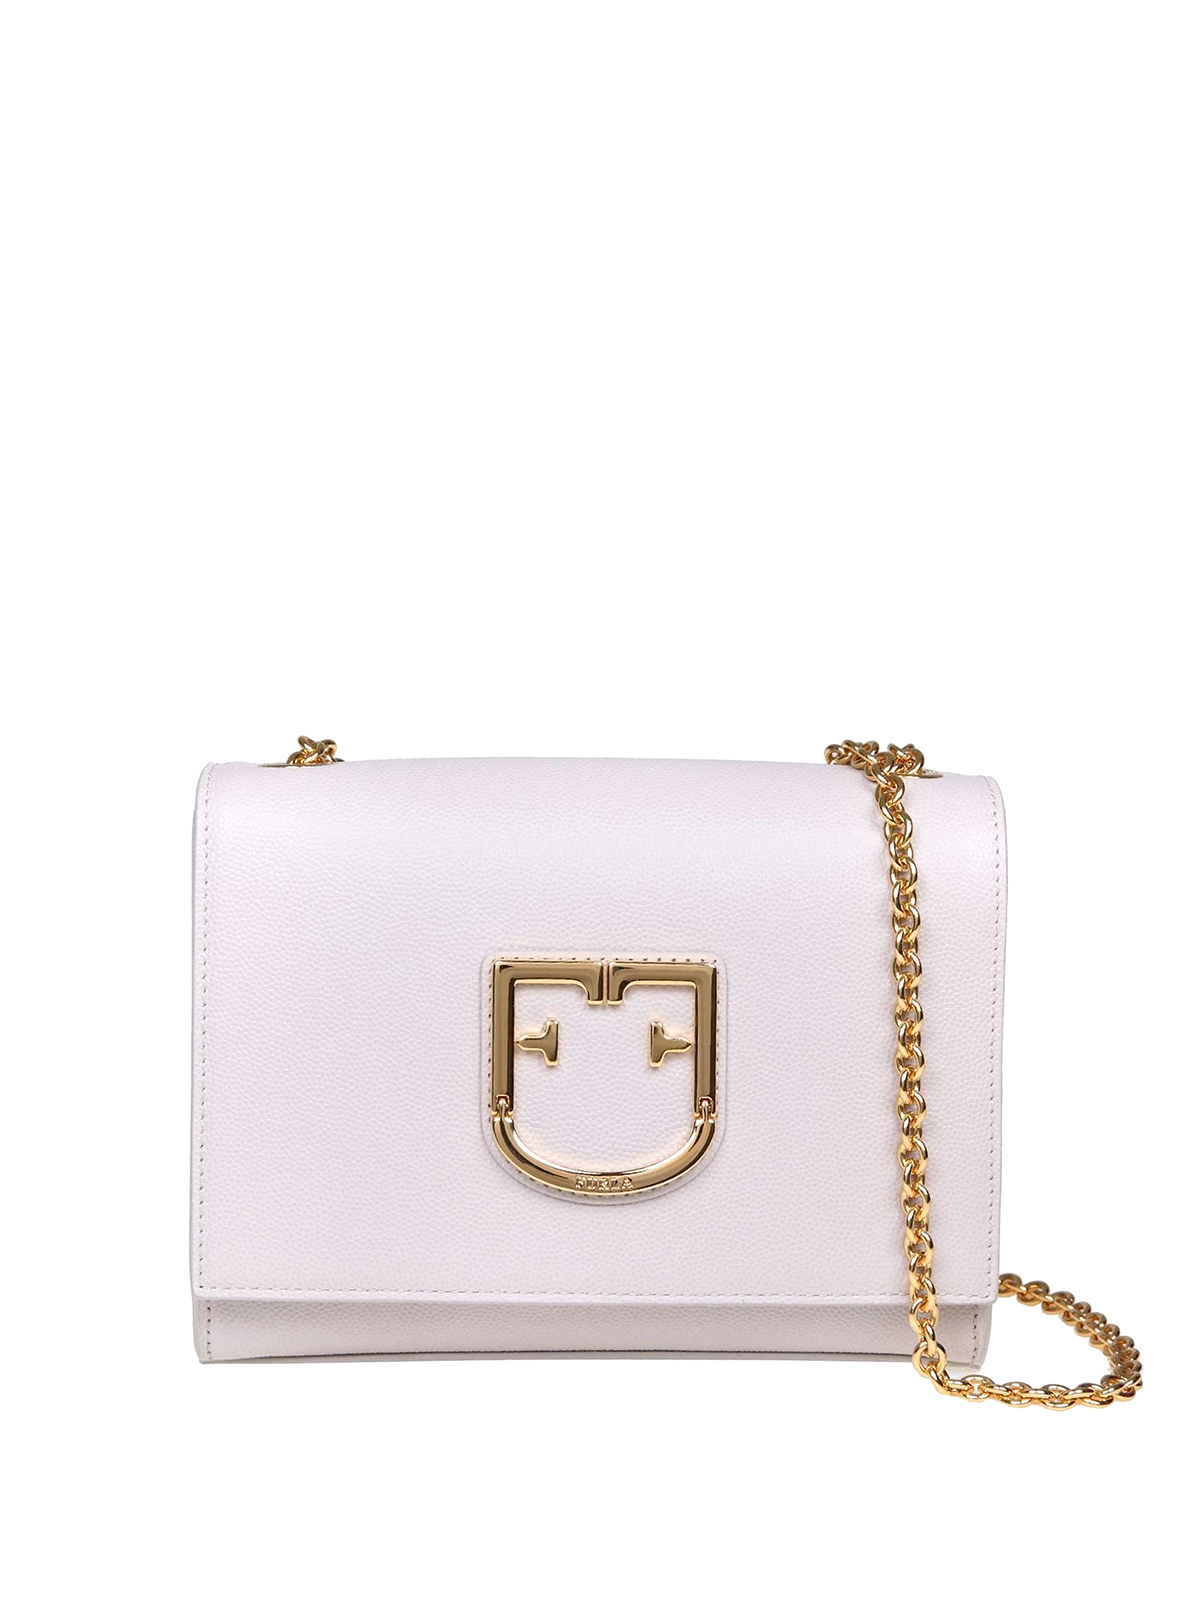 Furla - Viva Mini white bag - cross body bags - 1021380